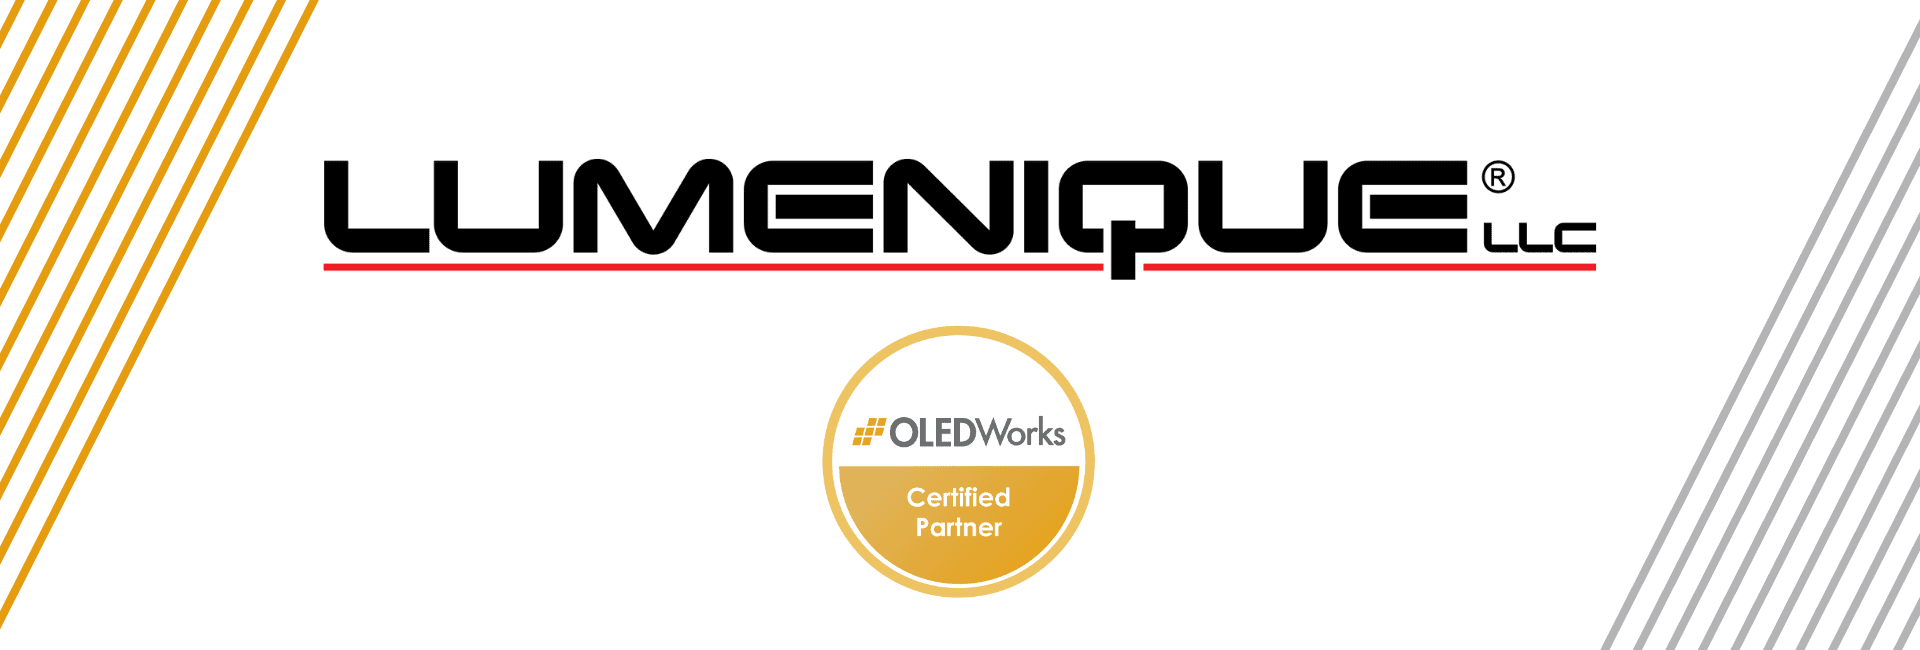 [Press Release] Lumenique LLC Announces Partnership with OLEDWorks to Elevate the Next Generation of Sculptural Portable Lighting